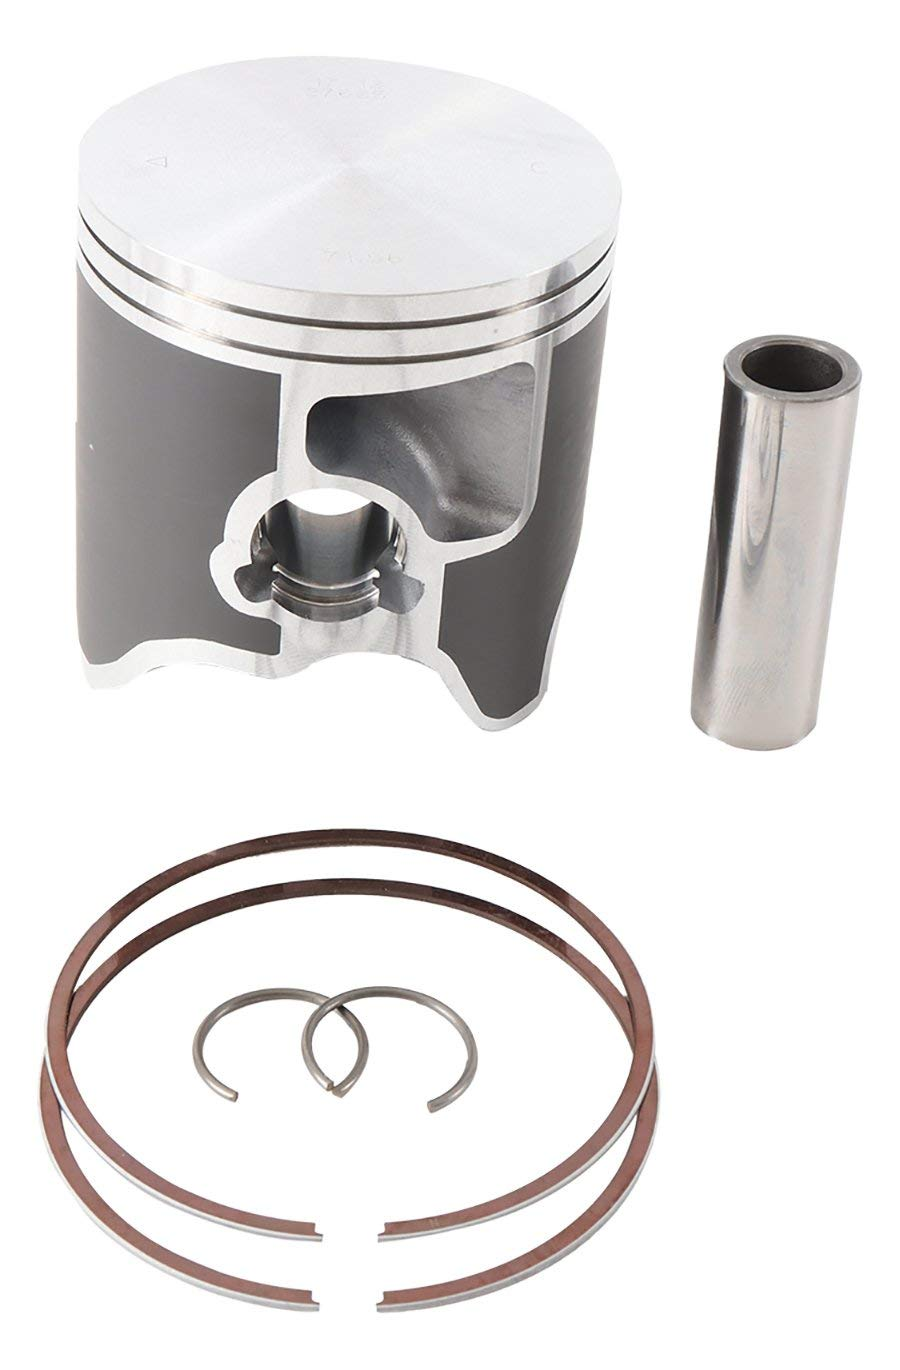 New Vertex Replica Piston Kit For KTM 300 EXC 04 05 06 07 08 09 10 11 12 13 14 15 16 17 18, 300 XC 06 07 08 09 10 11 12 13 14 15 16, 300 XC-W 06 07 08 09 10 11 12 13 14 15 16 23375C